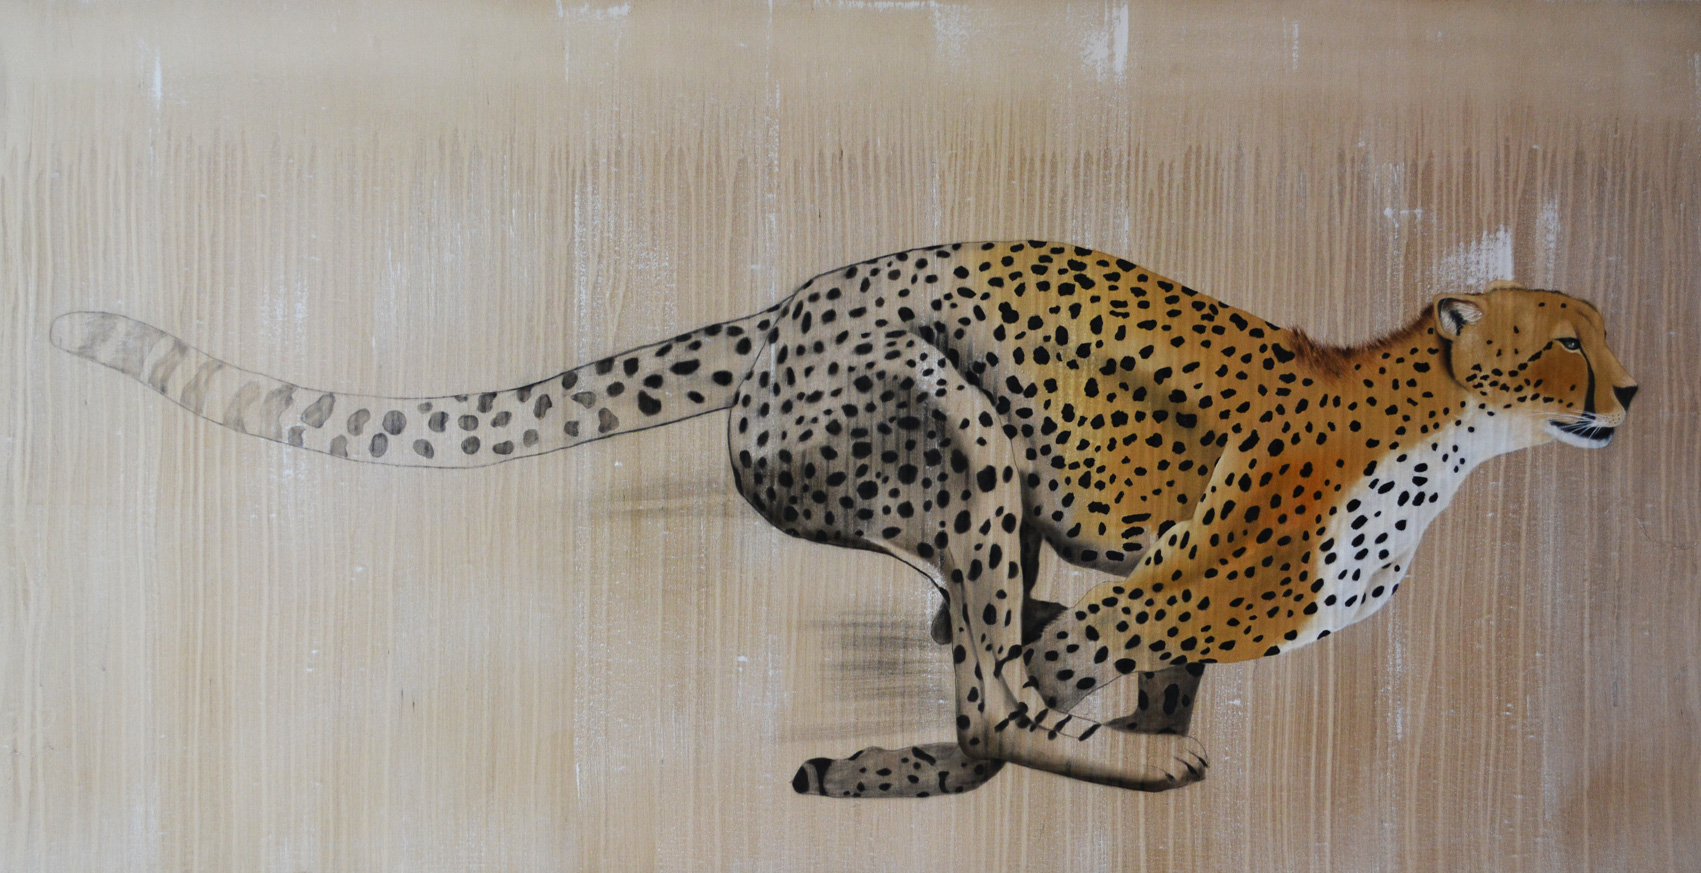 ACYNONYX-JUBATUS divers Thierry Bisch painter animals painting art decoration hotel design interior luxury nature biodiversity conservation